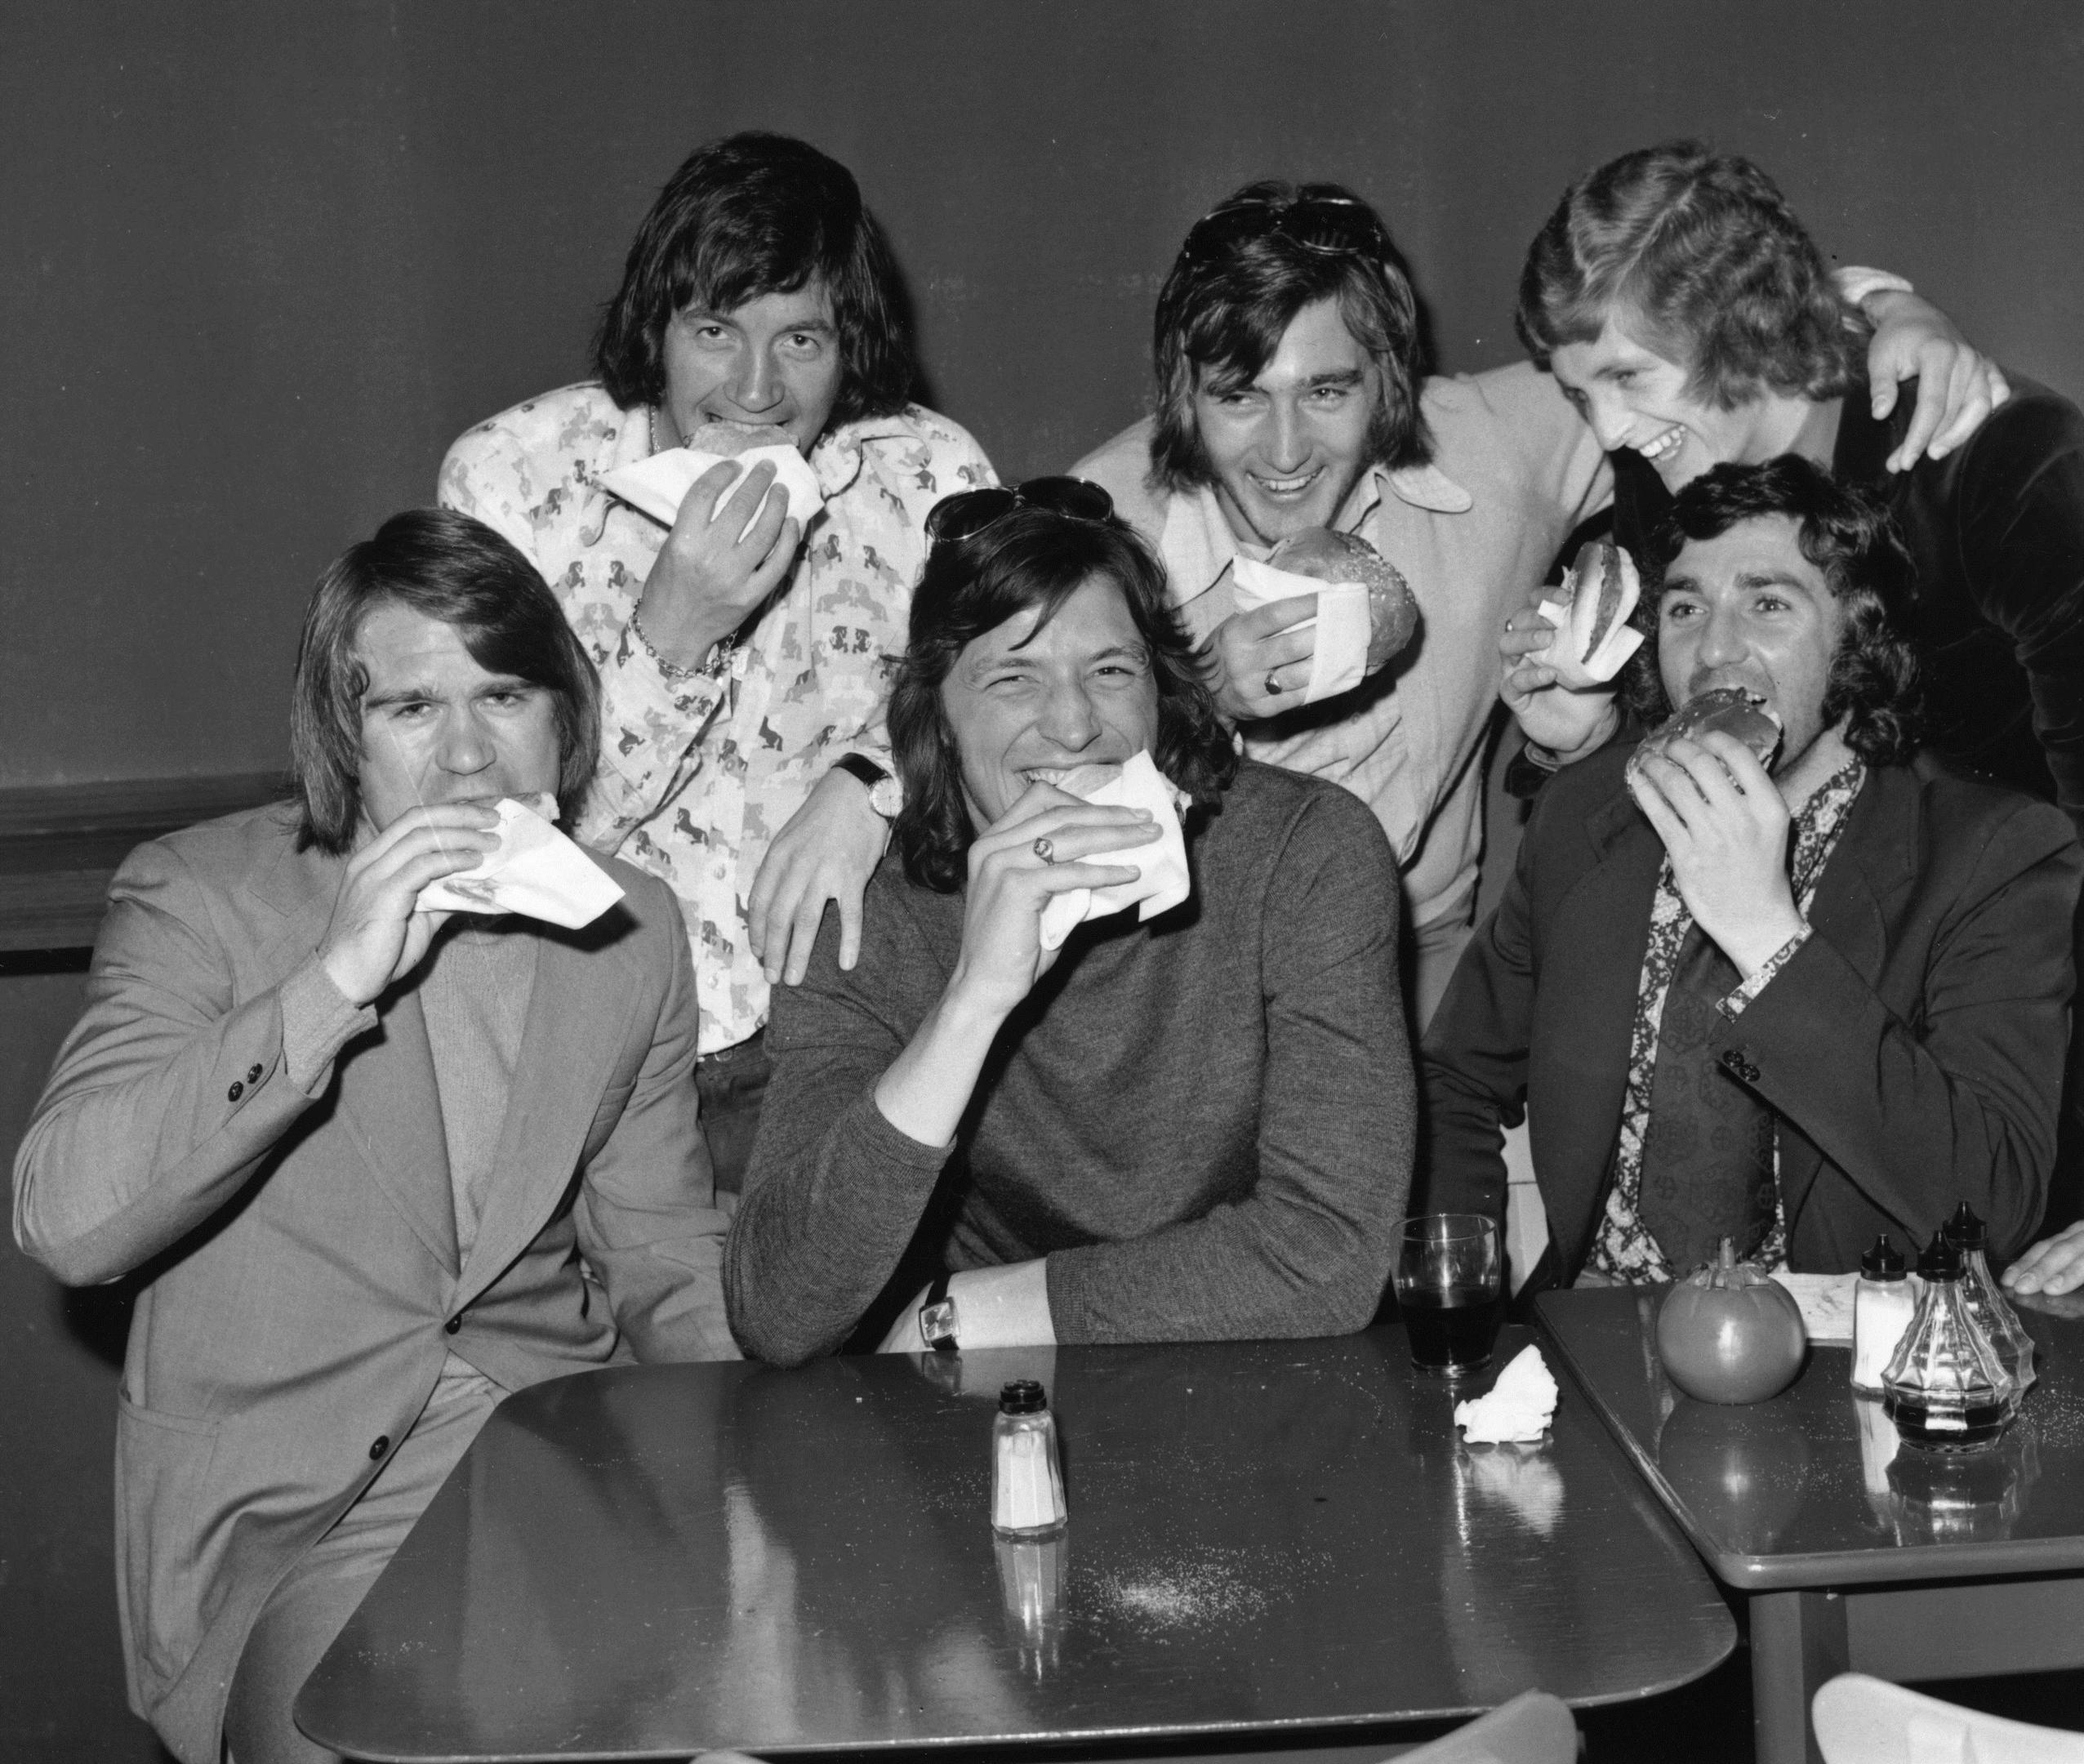 Chelsea players Dave Webb, John Boyle, Micky Droy, Alan Hudson, Chris Garland and Paddy Mulligan get stuck in to some hamburgers at a time when players weren't told to care as much about their diet (Getty Images)